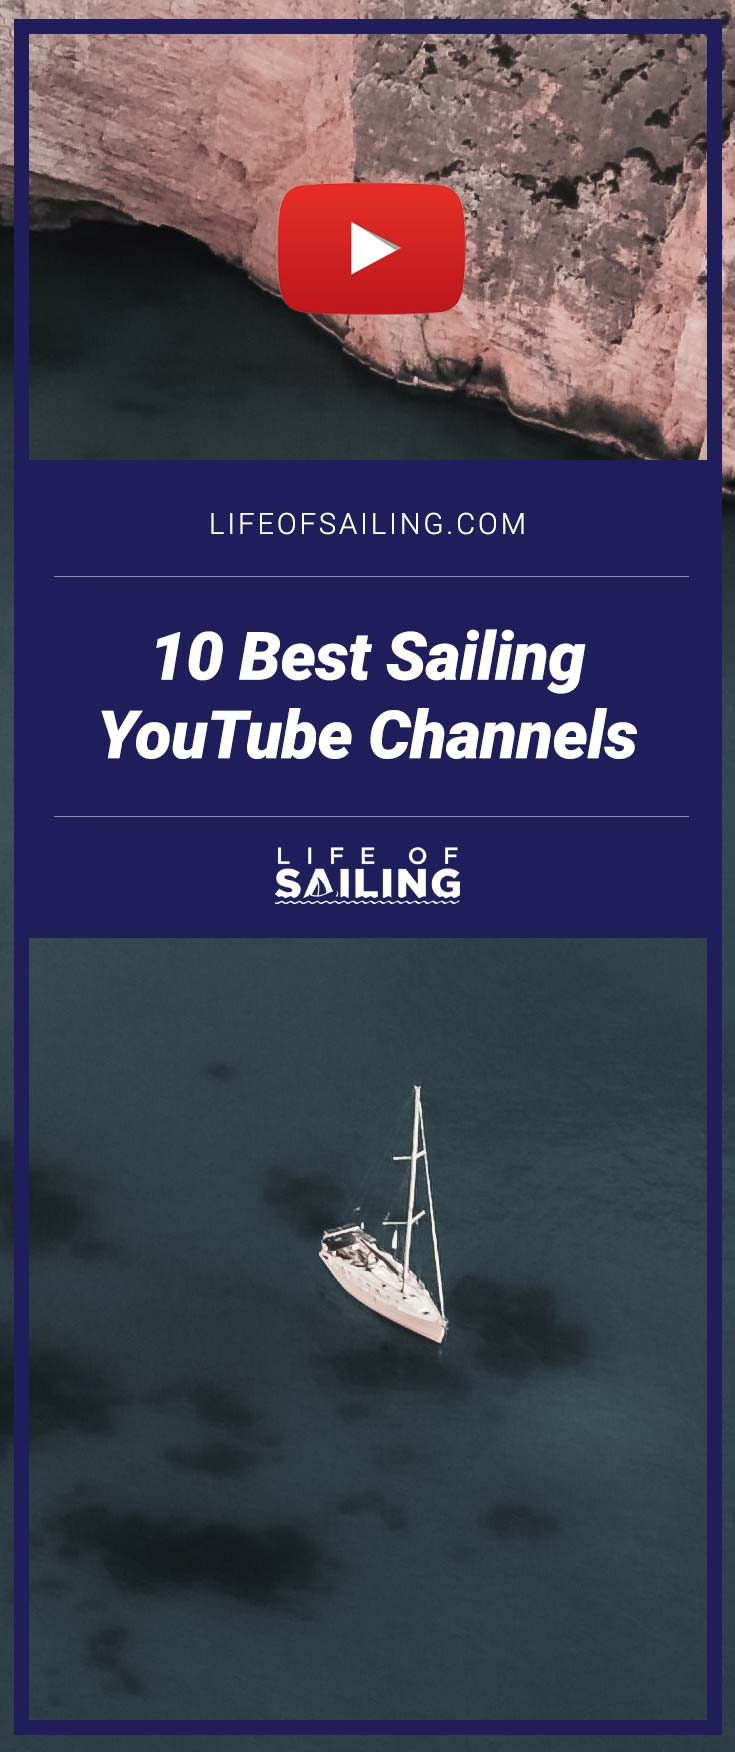 10 Best Sailing YouTube Channels